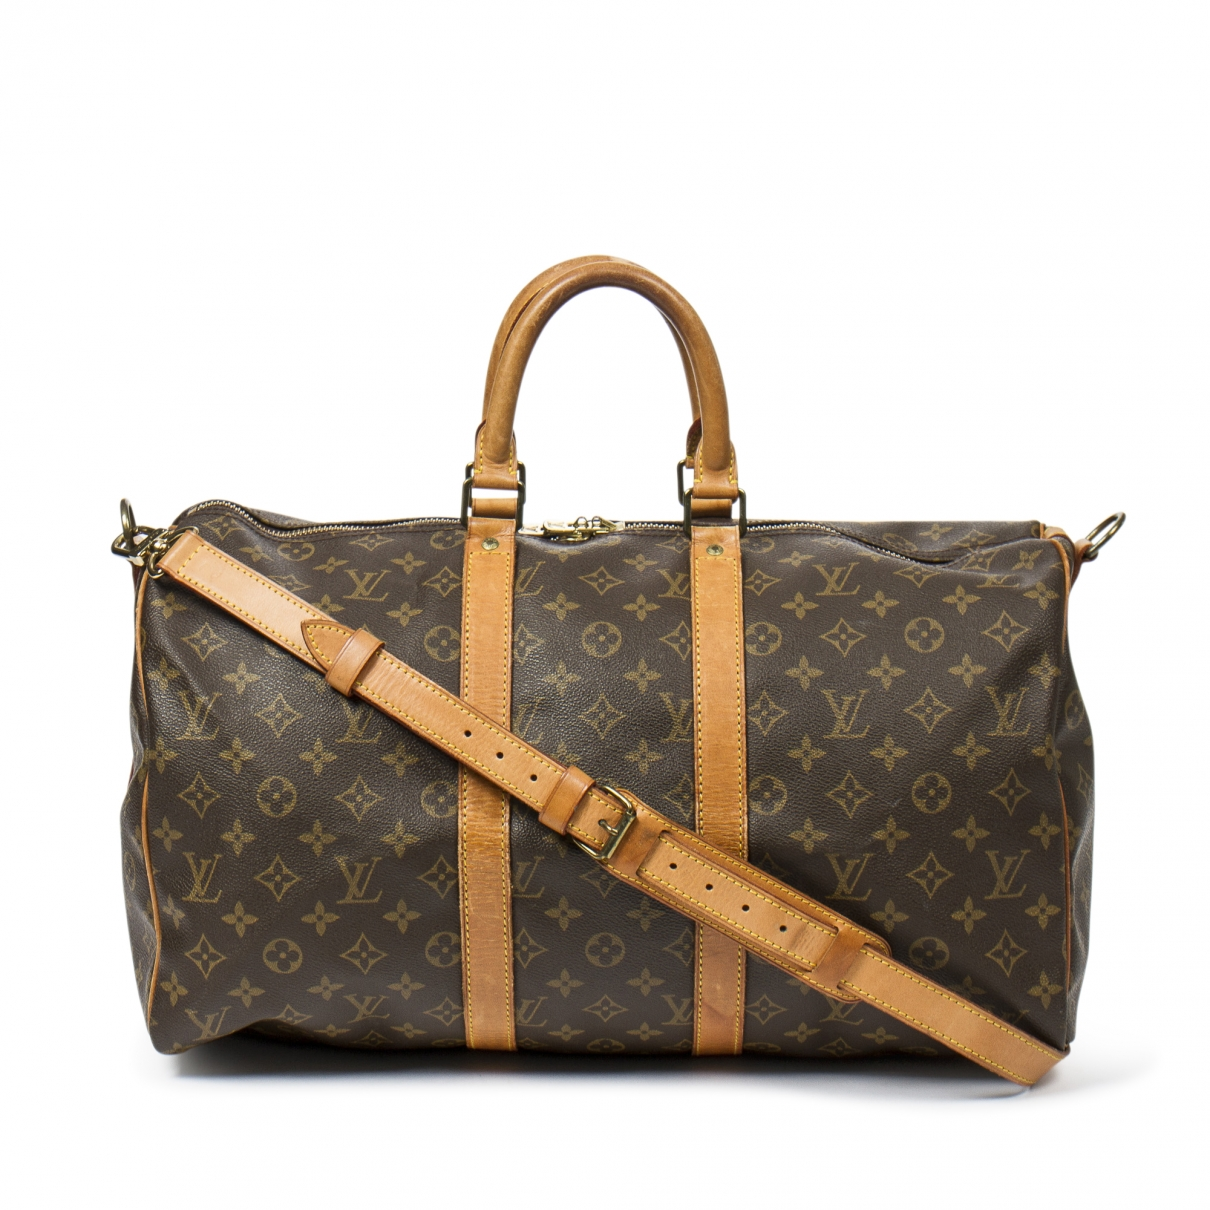 Louis Vuitton Keepall Reisetasche in  Braun Leder